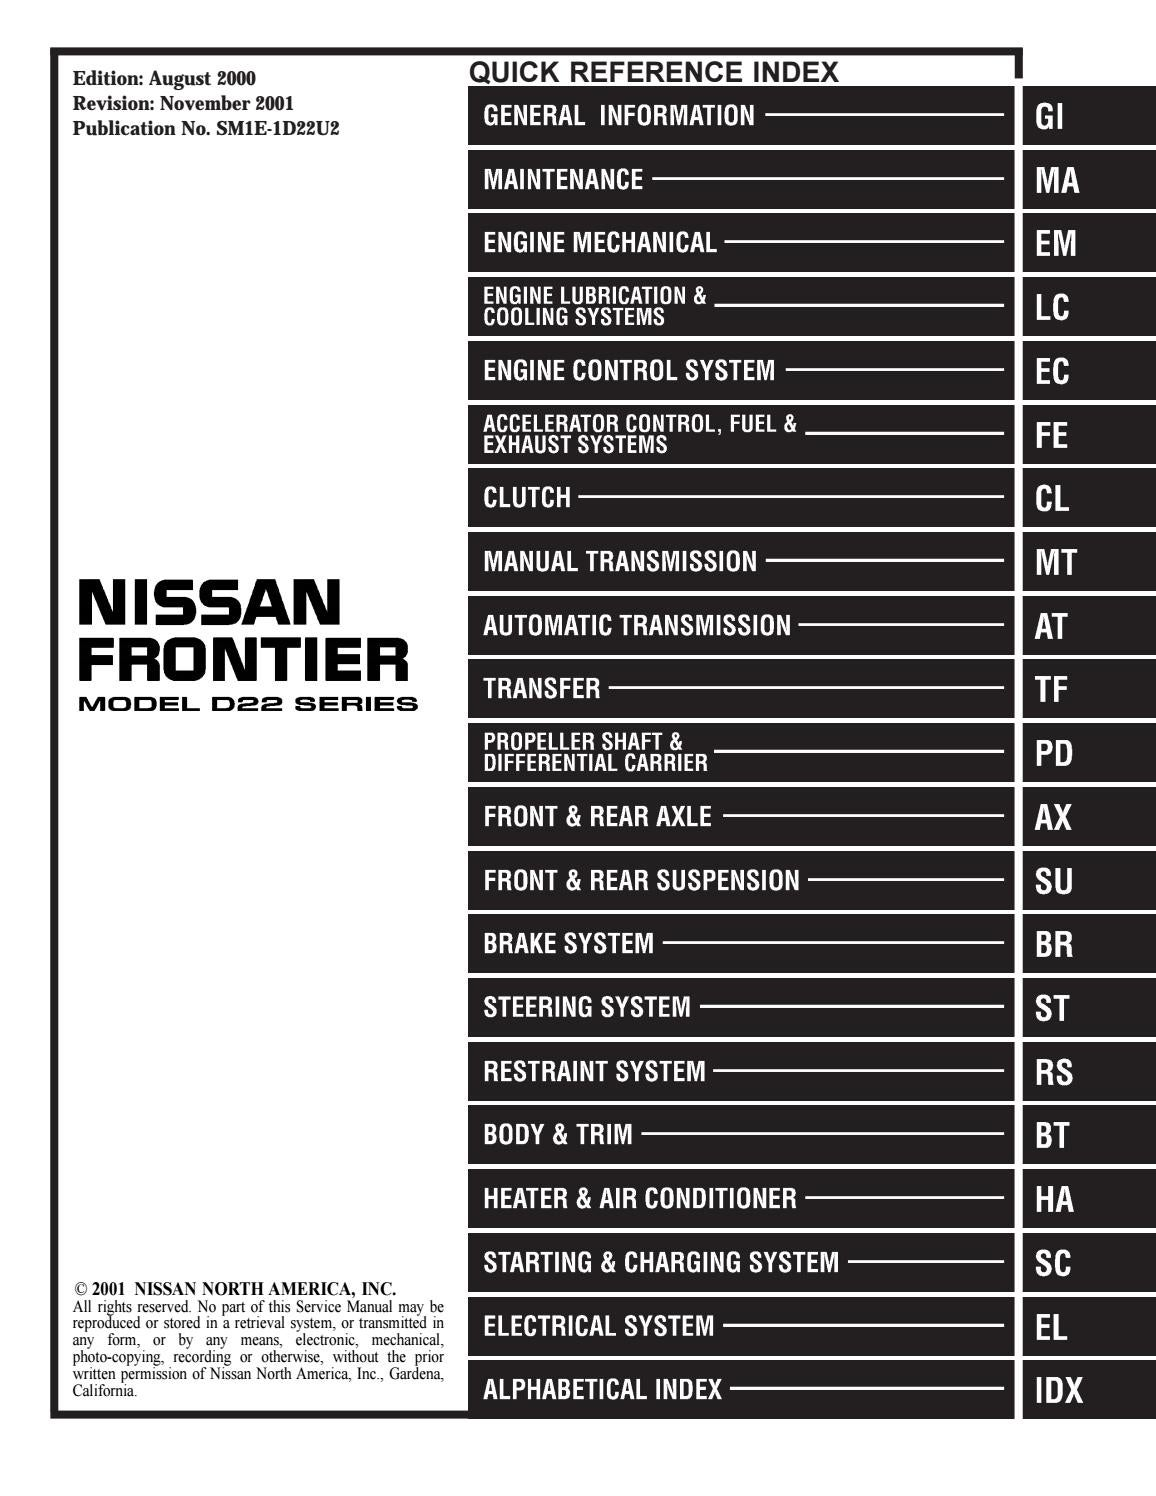 2001 nissan frontier service repair manual by 163615 - issuu  issuu